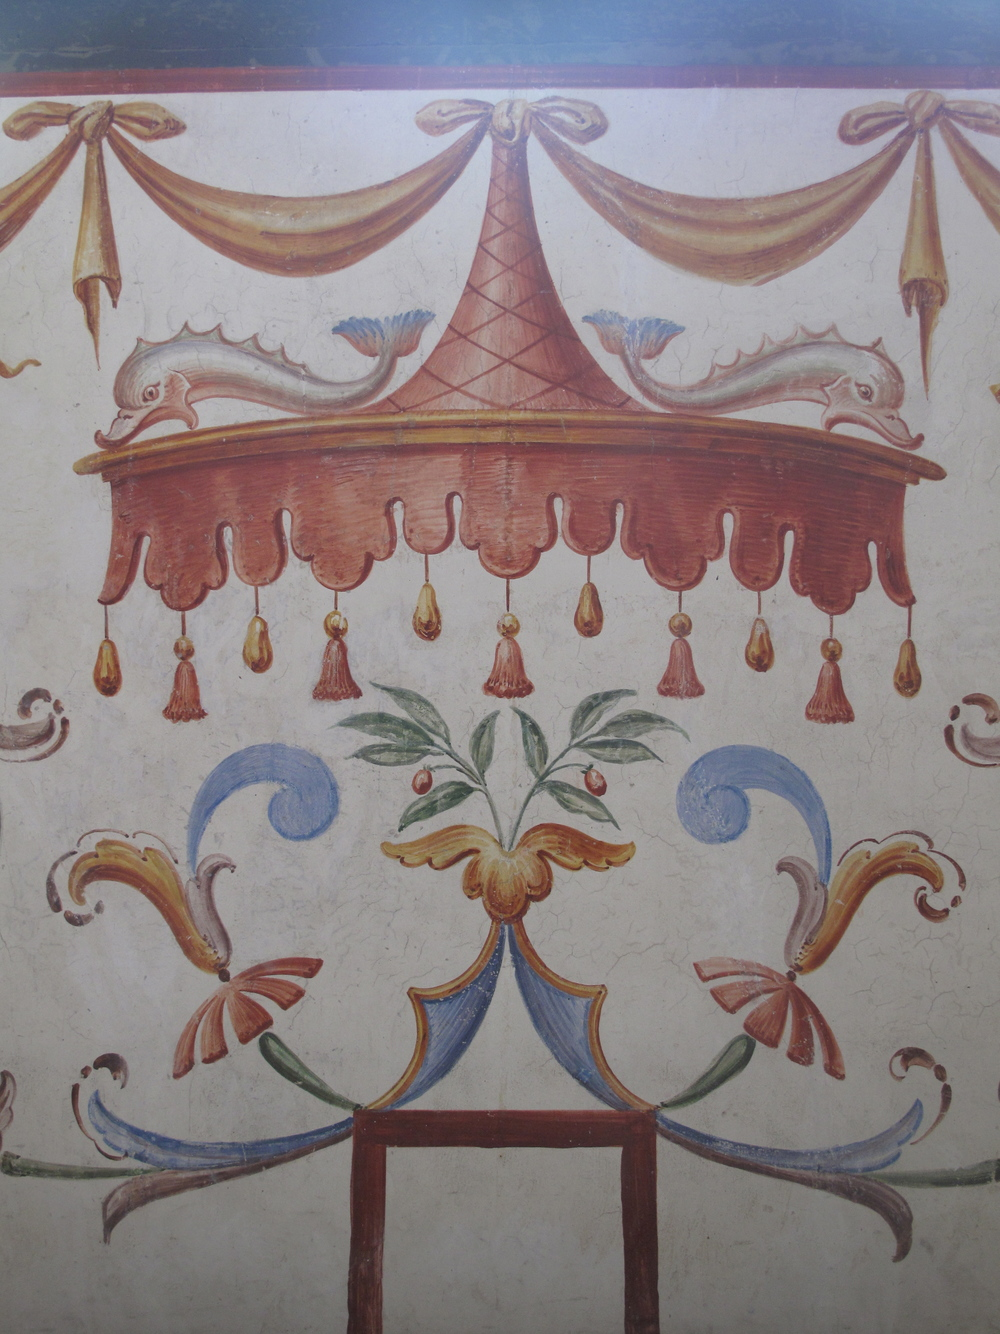 Painted walls at Schloss Ambras in Austria - canopies, curlicues, ribbons, leaves.